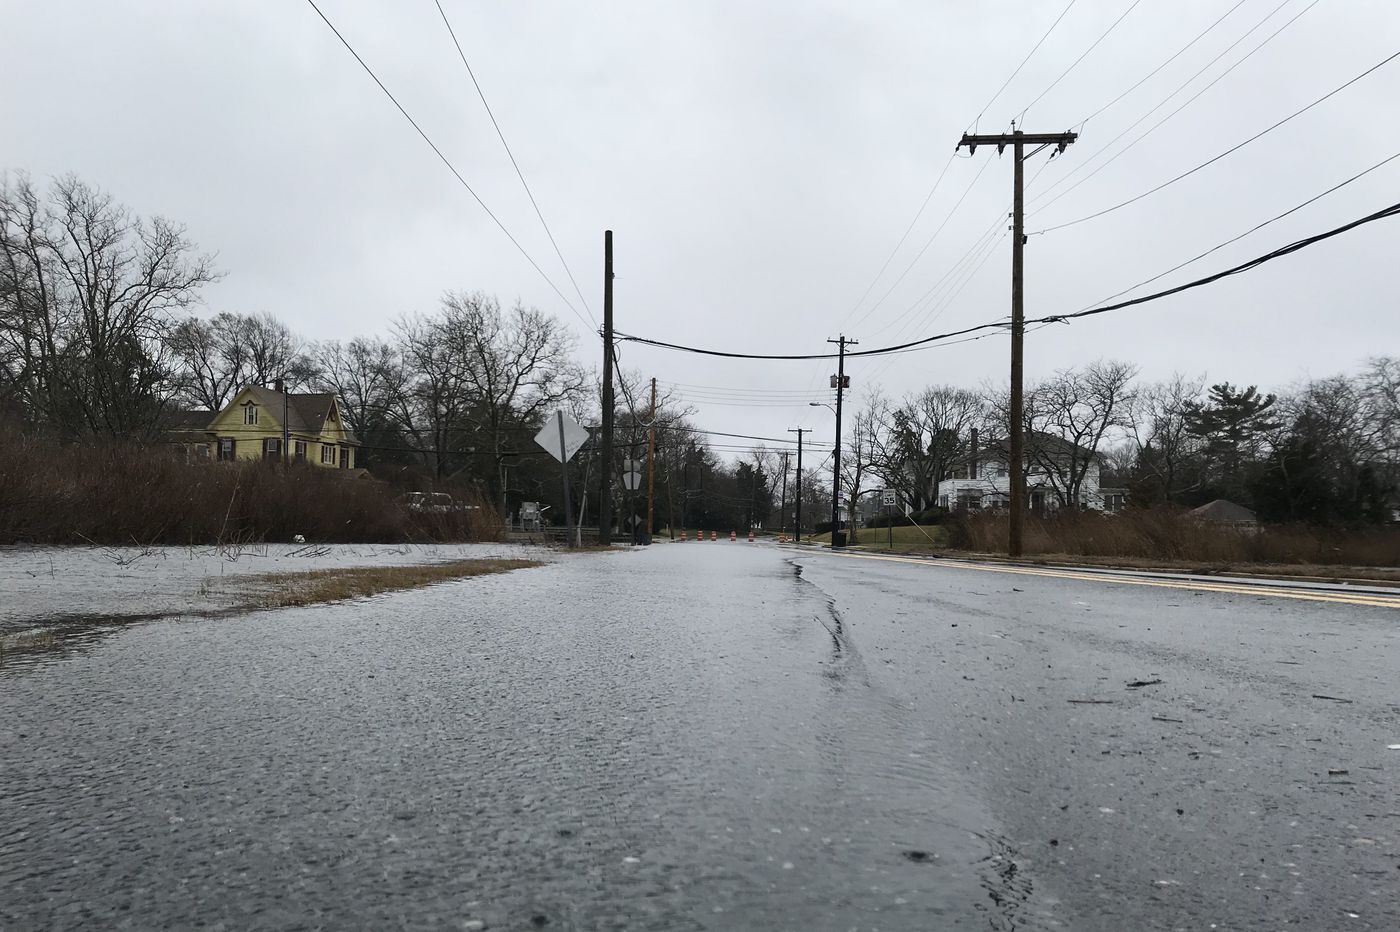 Nor'easter looking more likely; could be tough weekend for beaches, trees, power lines